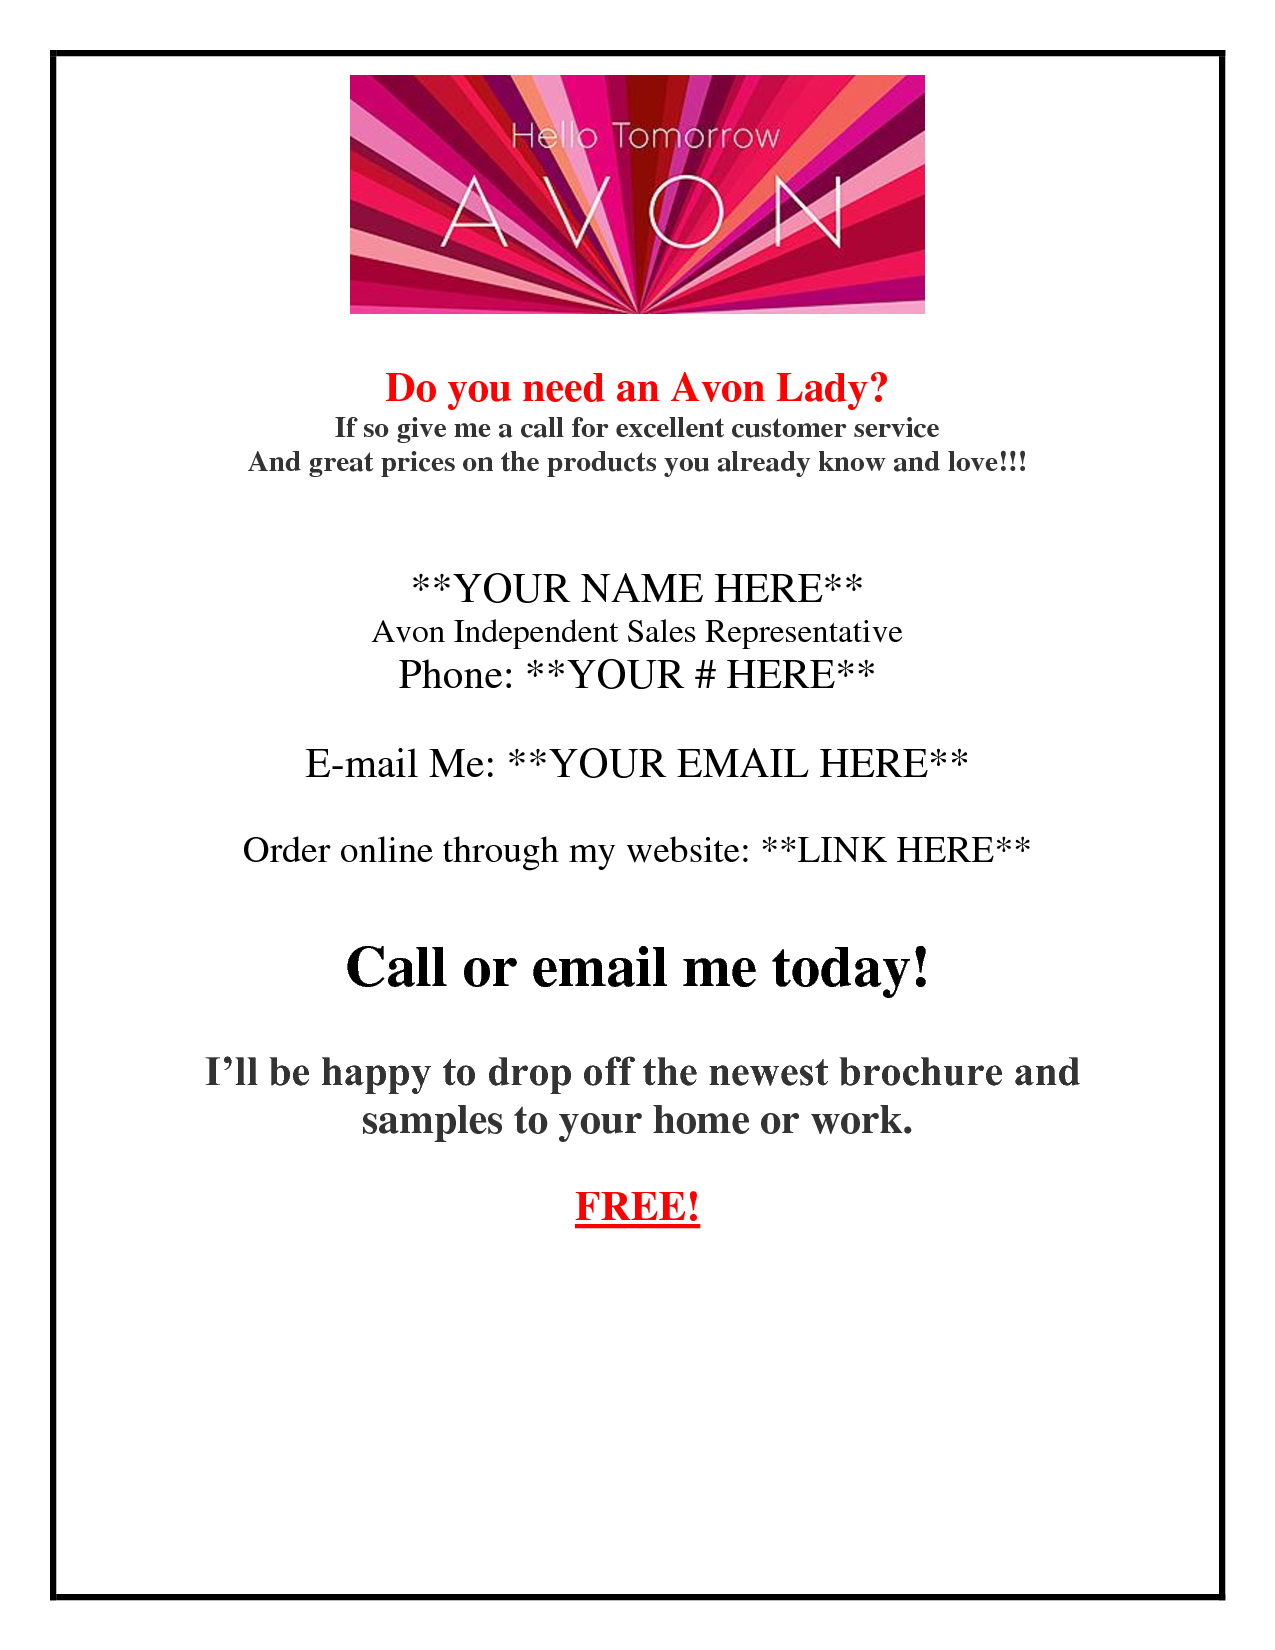 Contact Me Angie Rettig Avon Independent Representative At (941) 822 - Free Printable Avon Flyers